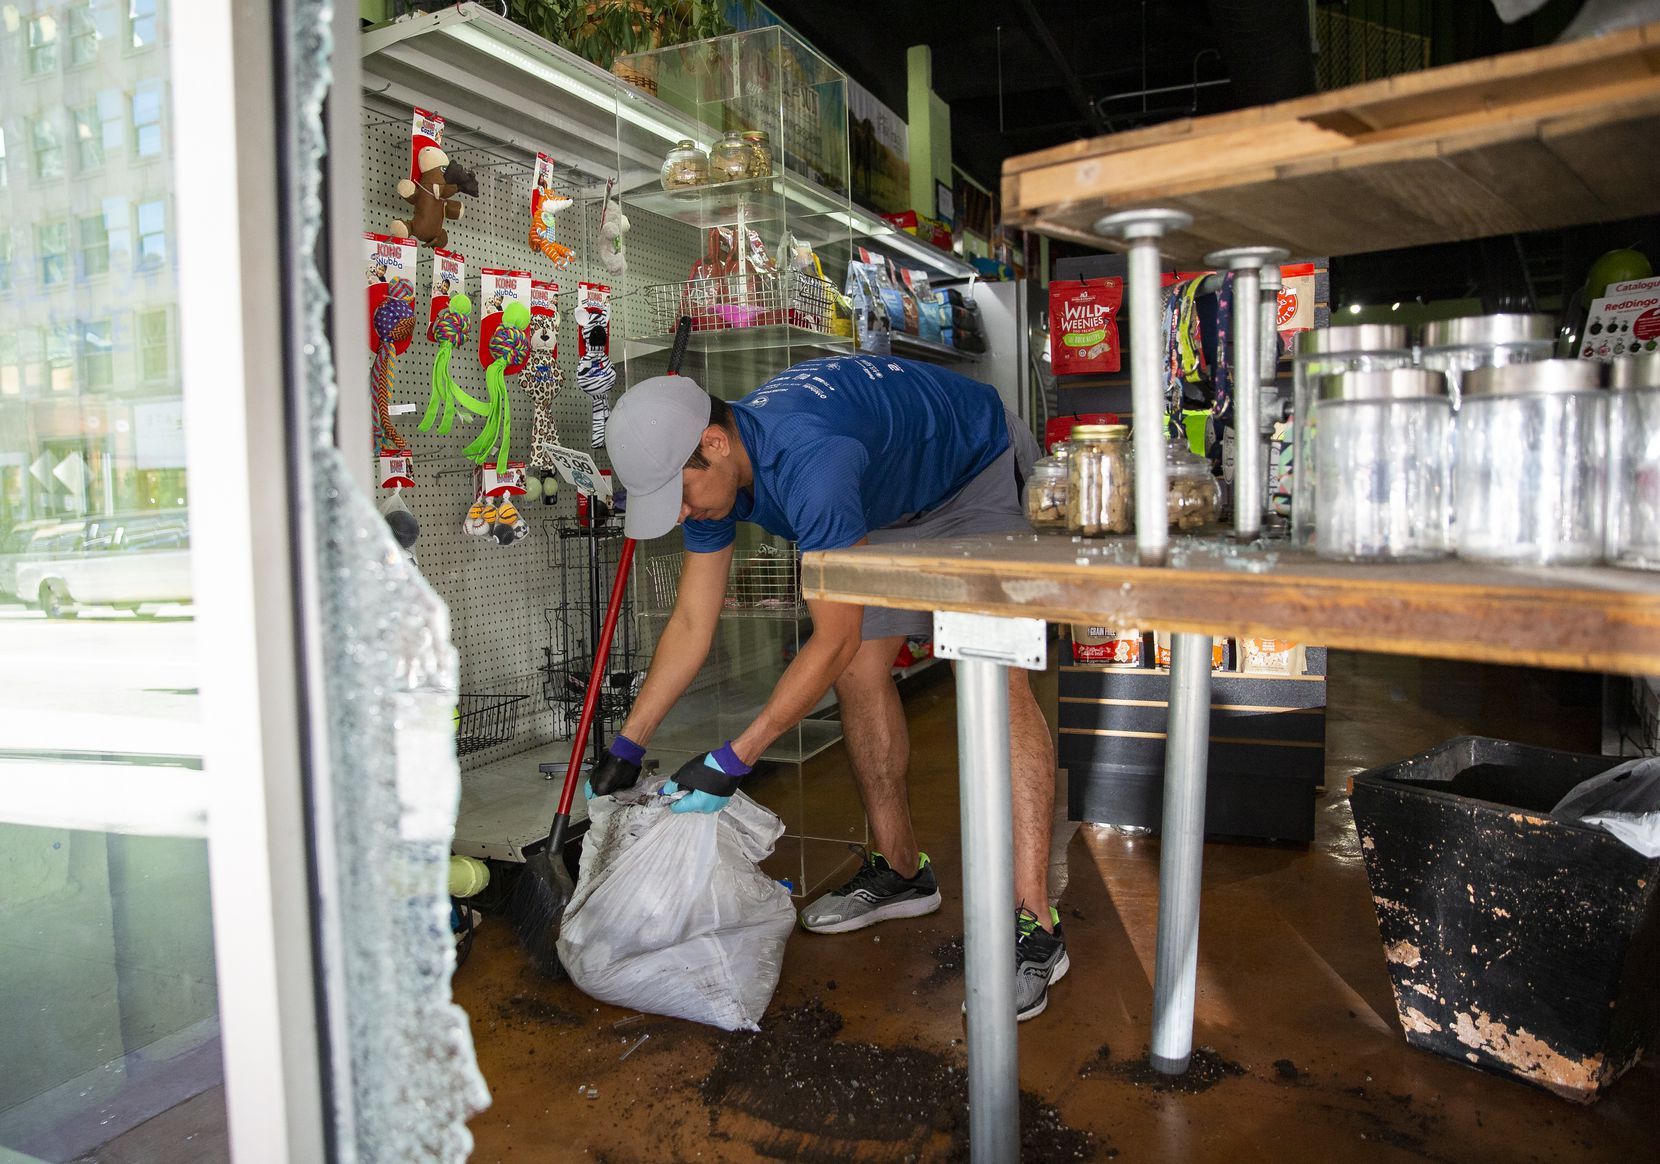 Downtown Pawz co-owner Jonathan Bustos cleans up inside the shop after being hit during last night's protest last night on Saturday morning, May 30, 2020 in Downtown Dallas. Bustos said he learned about the damage after seeing a client's comment on their Facebook.